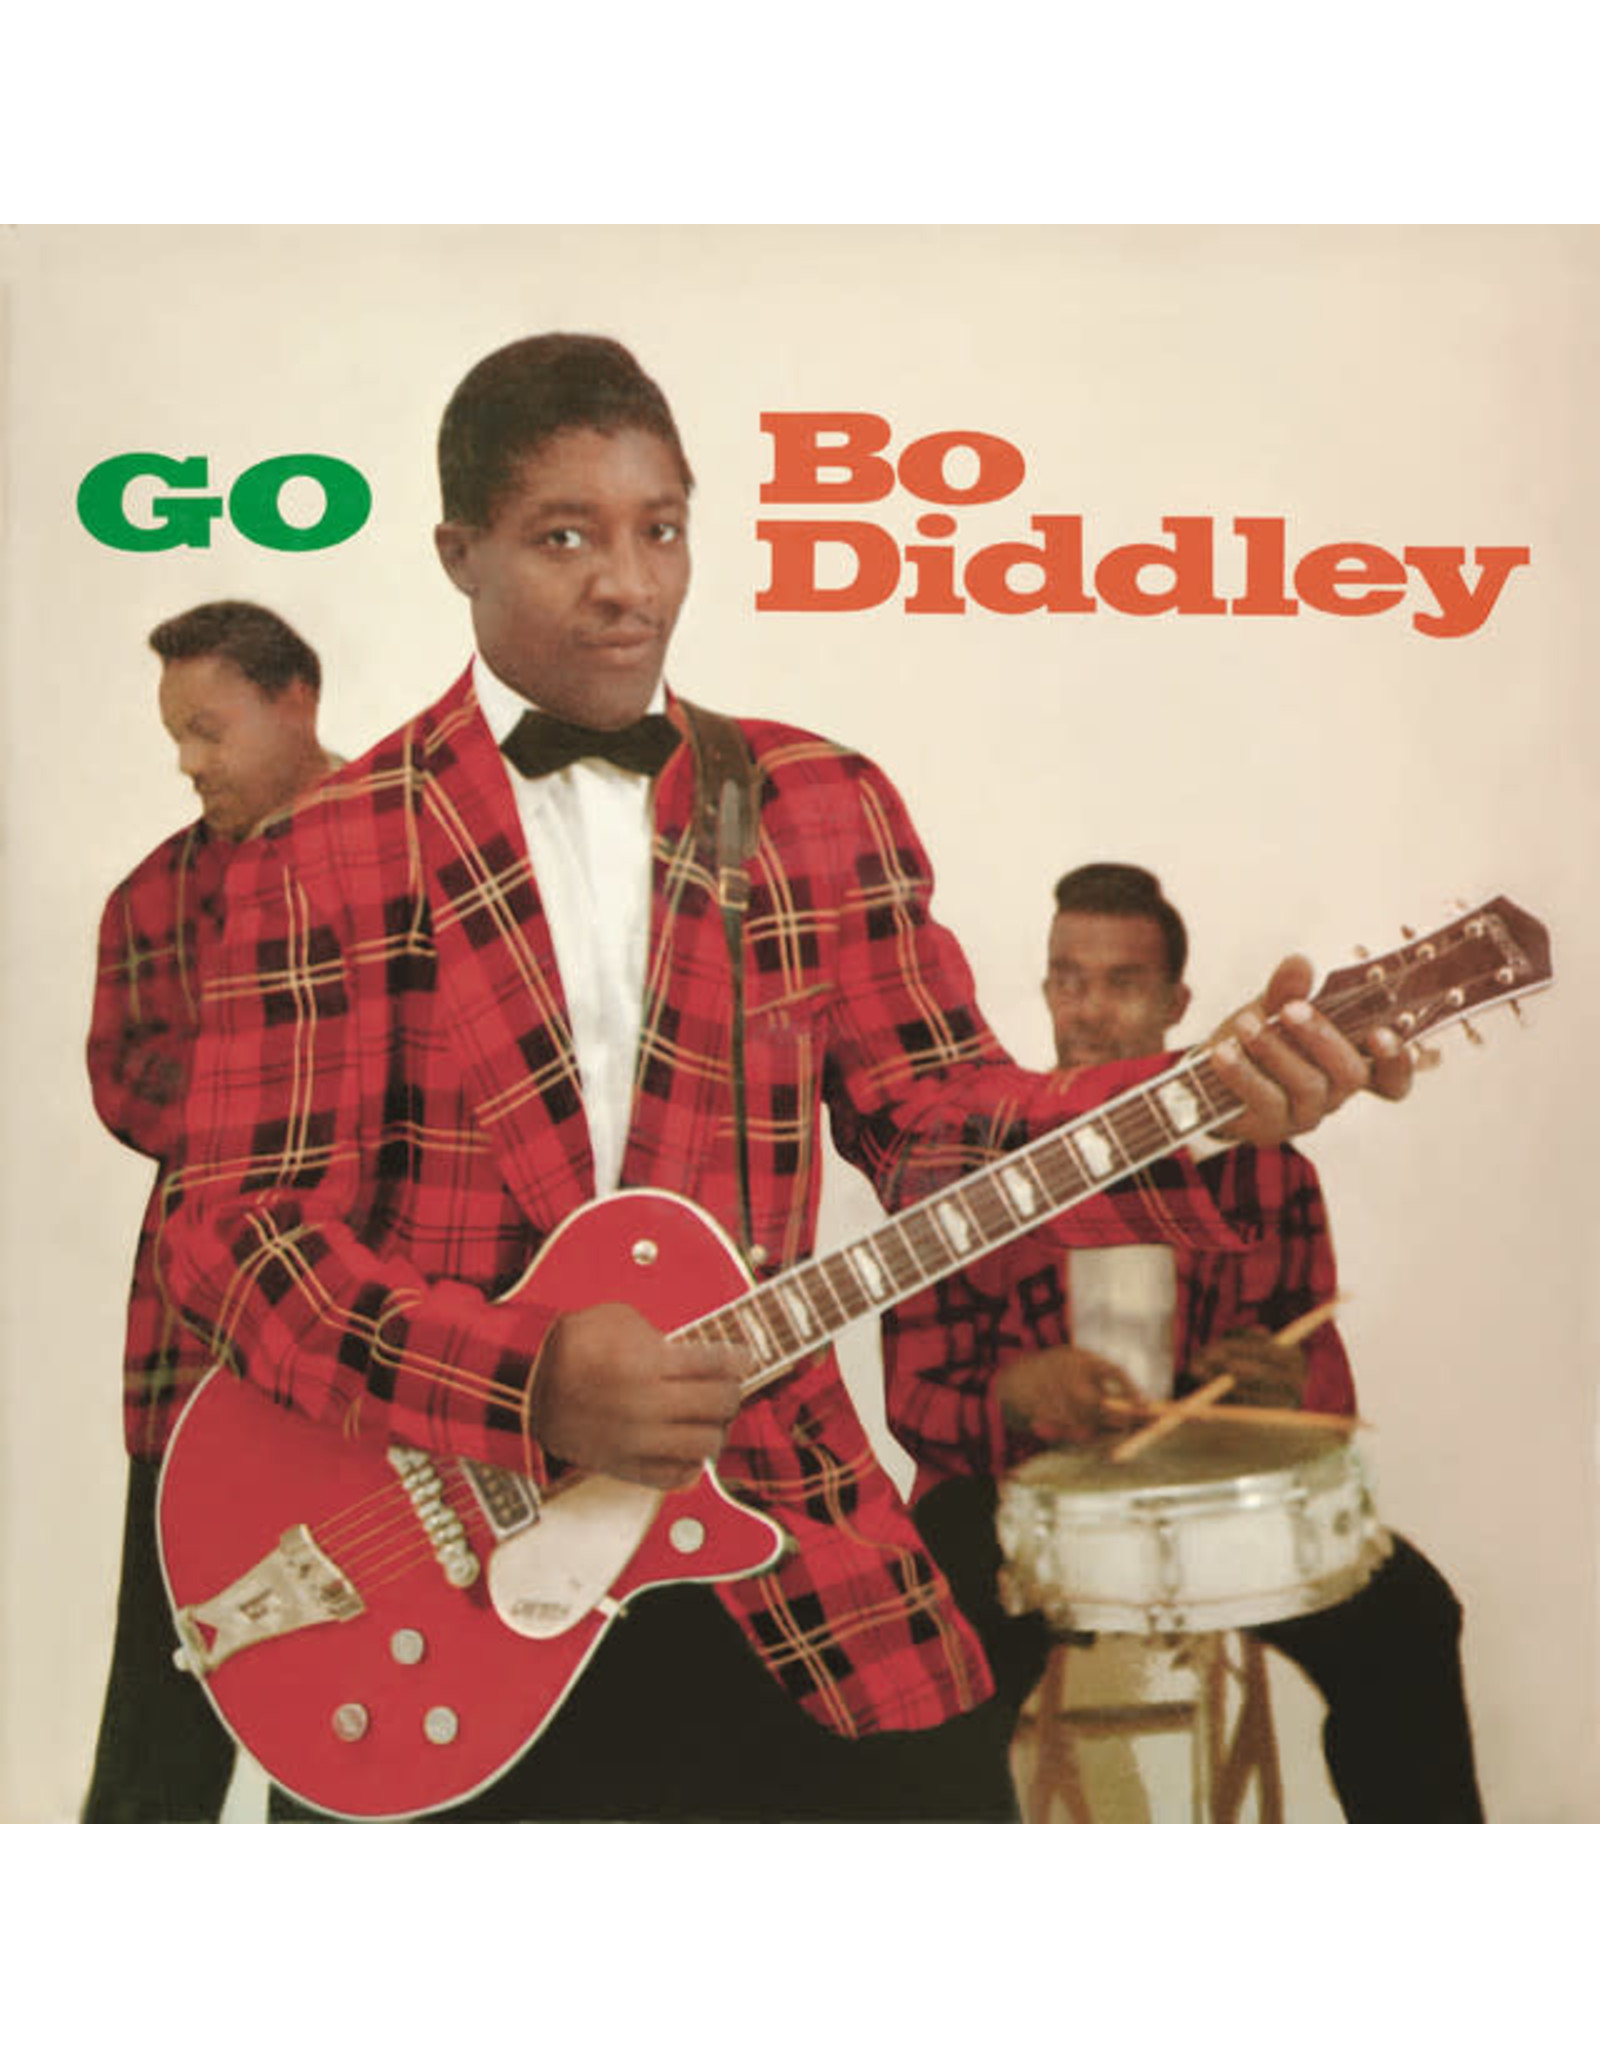 Vinyl Bo Diddley - Go Bo Diddley. Final Sale